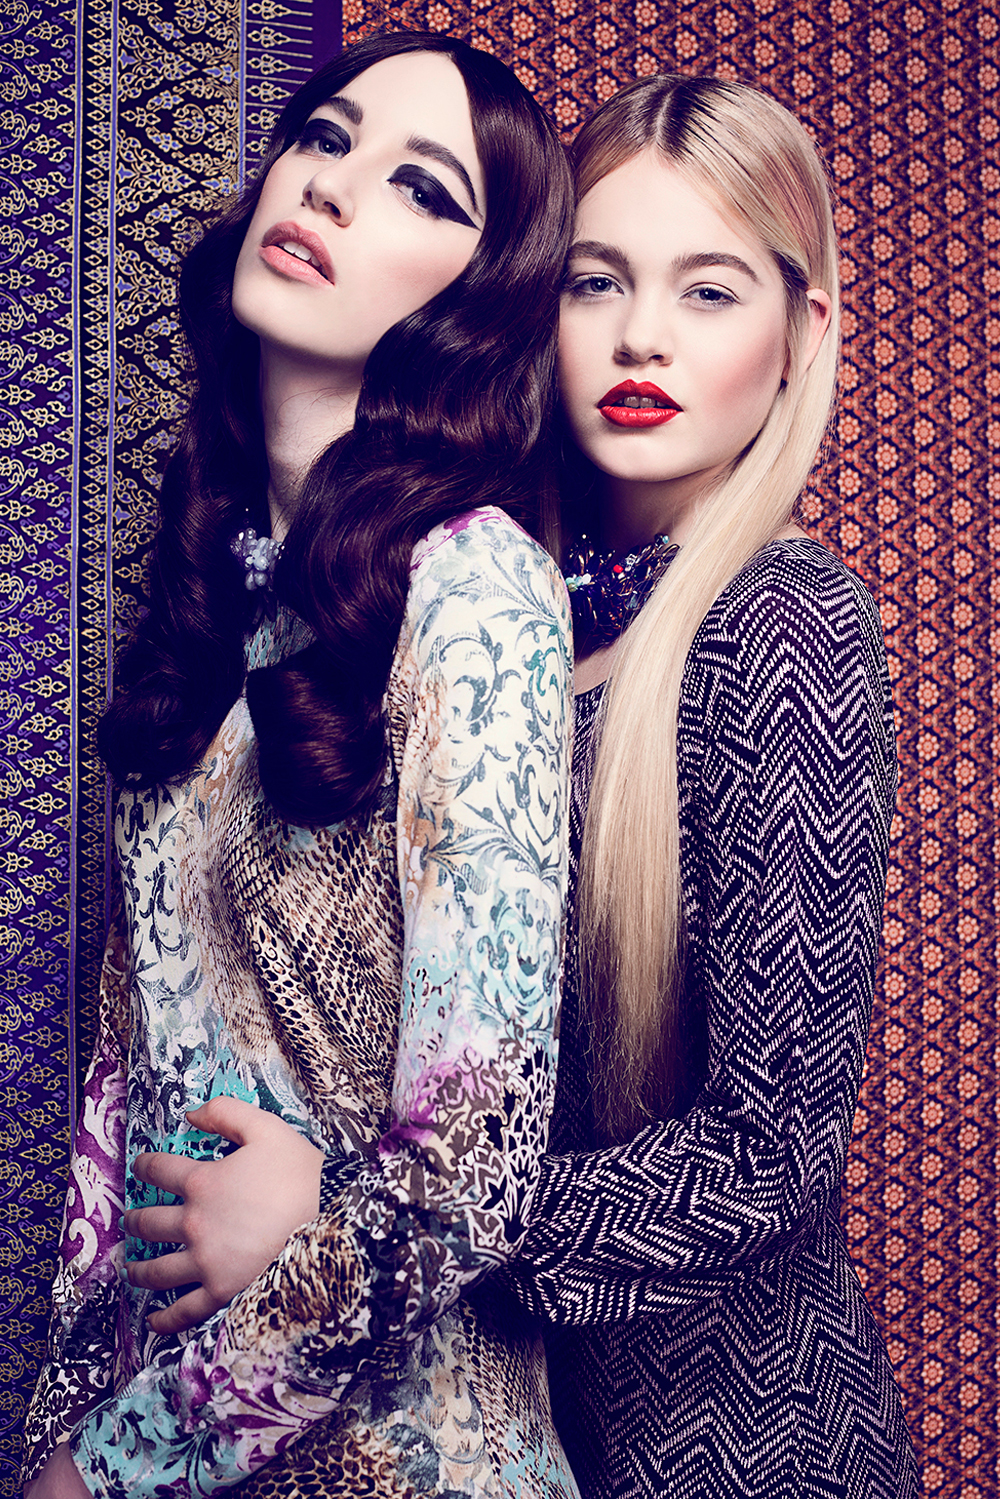 aylinreckermann_fashion_photography_orient_okzident_sisters_5.jpg